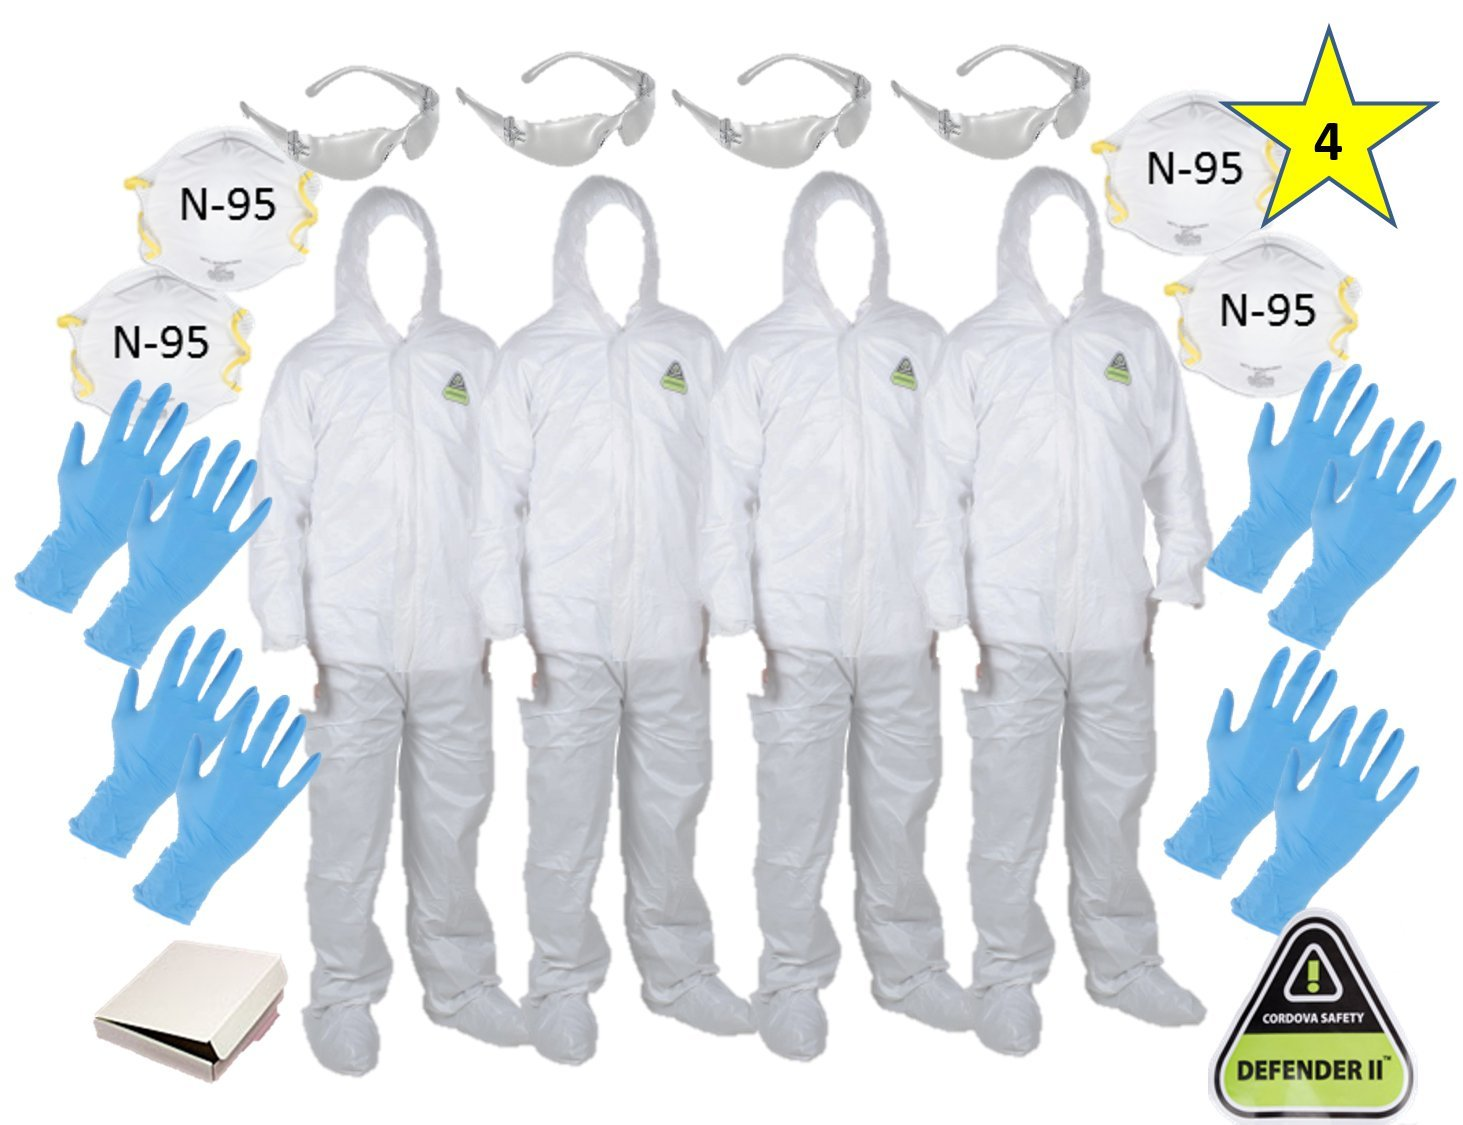 MP-400 ( XL)(Four) CORDOVA DEFENDER II White Disposable Suits Microporous paint Coveralls with Hood and Boots + 4 N-95 Masks + 4 Safety Glasses + 8 Gloves size L